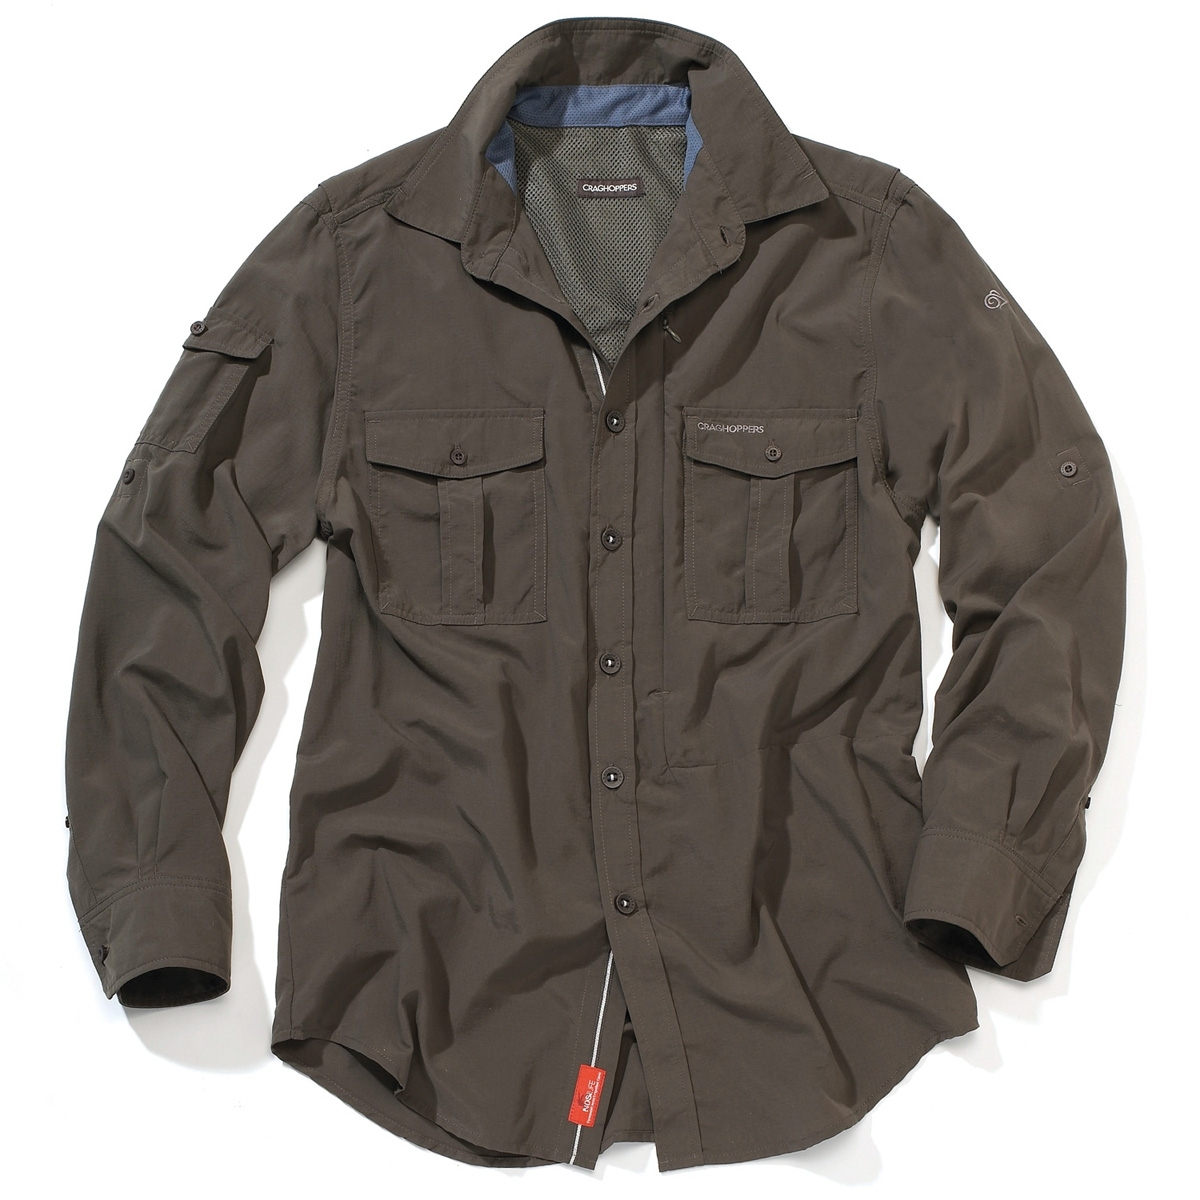 Image of Craghoppers Mens NosiLife Long-Sleeve Shirt - Dark Khaki 781efa1c4d14